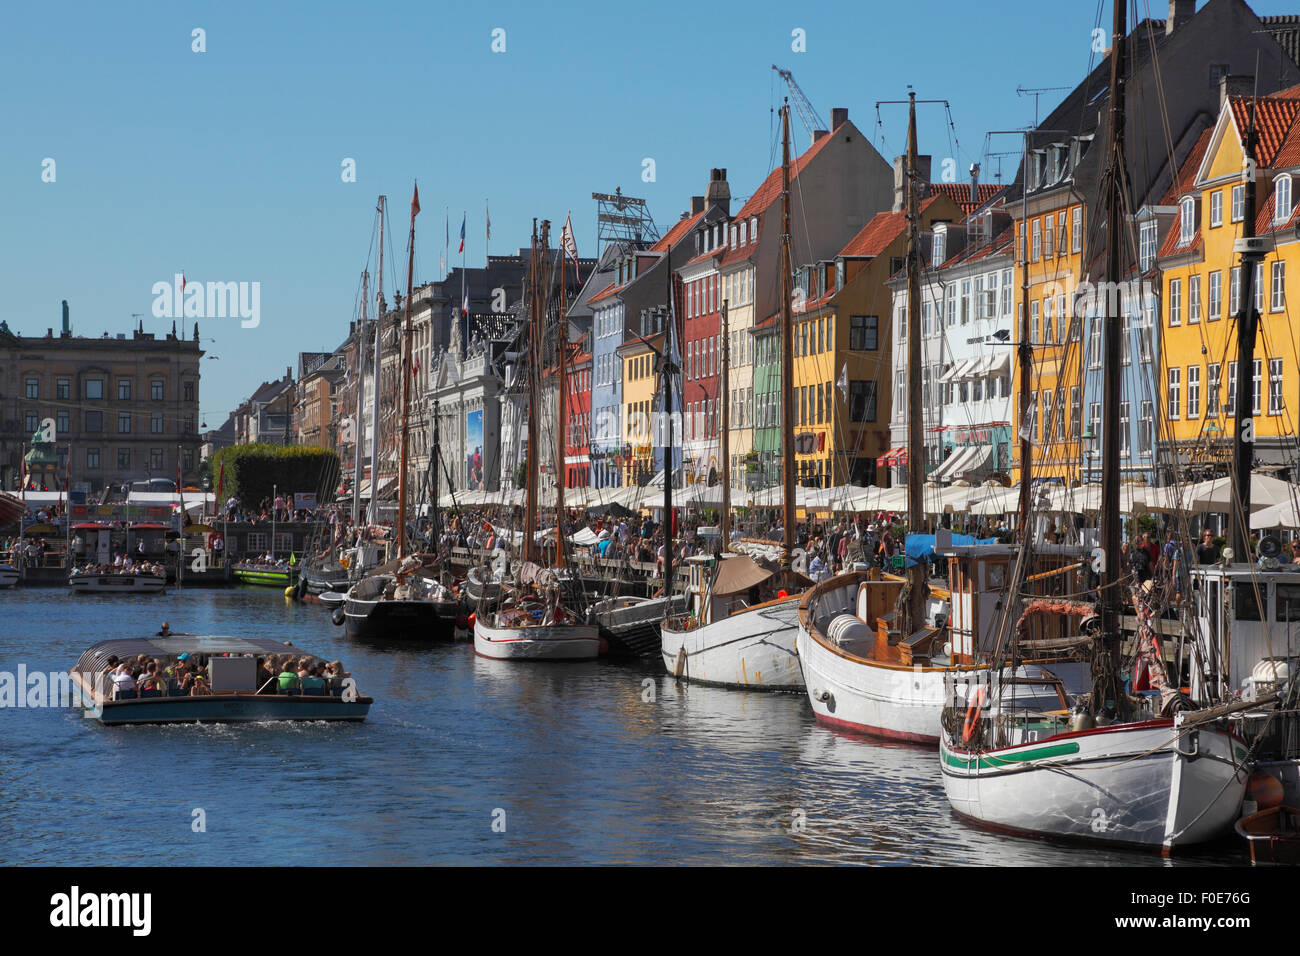 Nyhavn full of old ships, crowded canal tour boats and people at waterside and pavement restaurants on a very busy - Stock Image